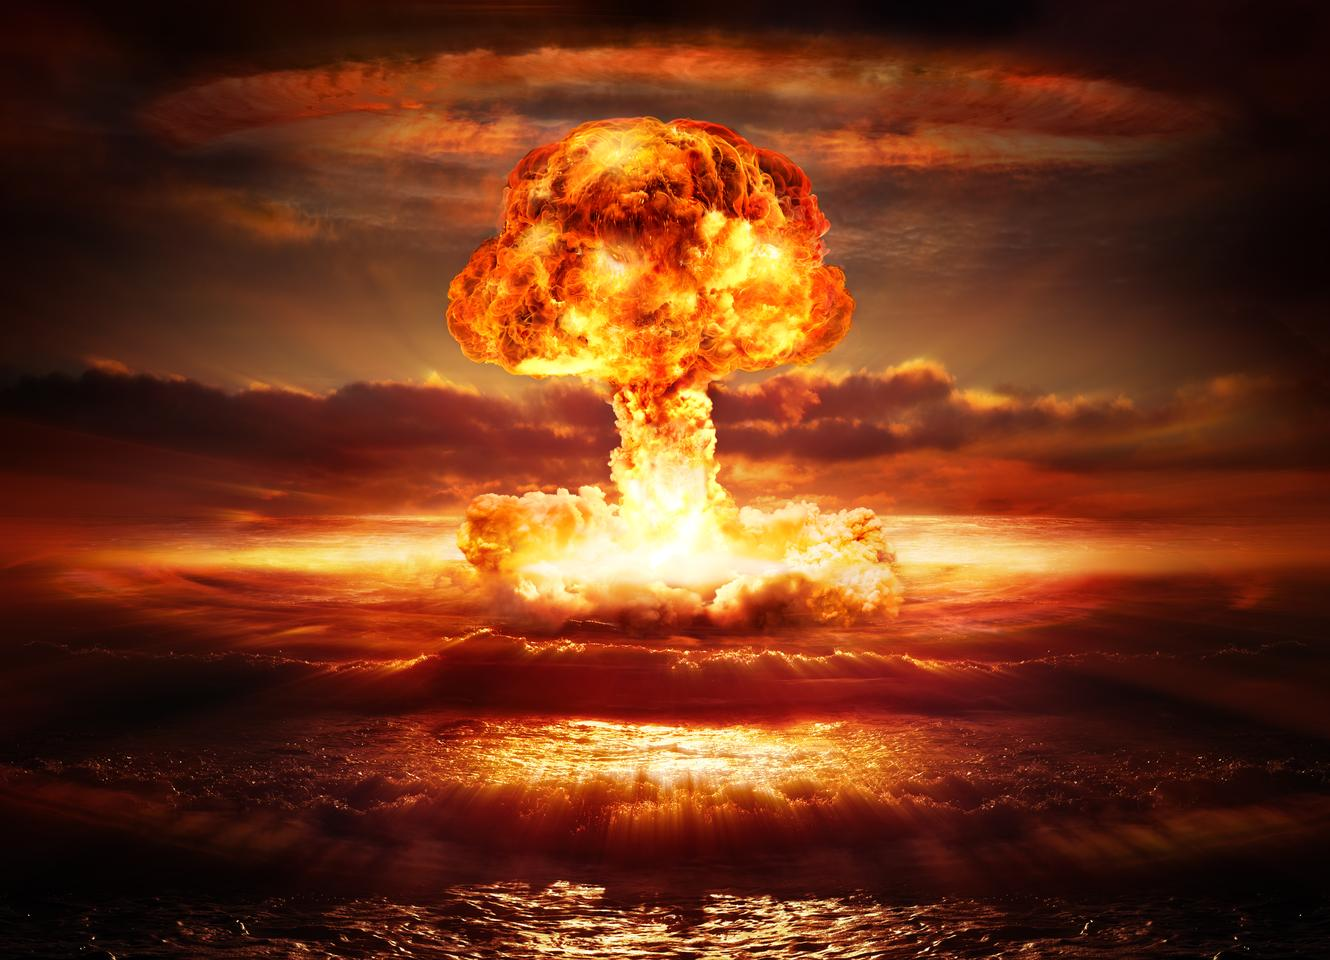 Researchers have found a way to carbon date our immune cells – thanks to radioactive isotopes in our cells from past nuclear weapons testing